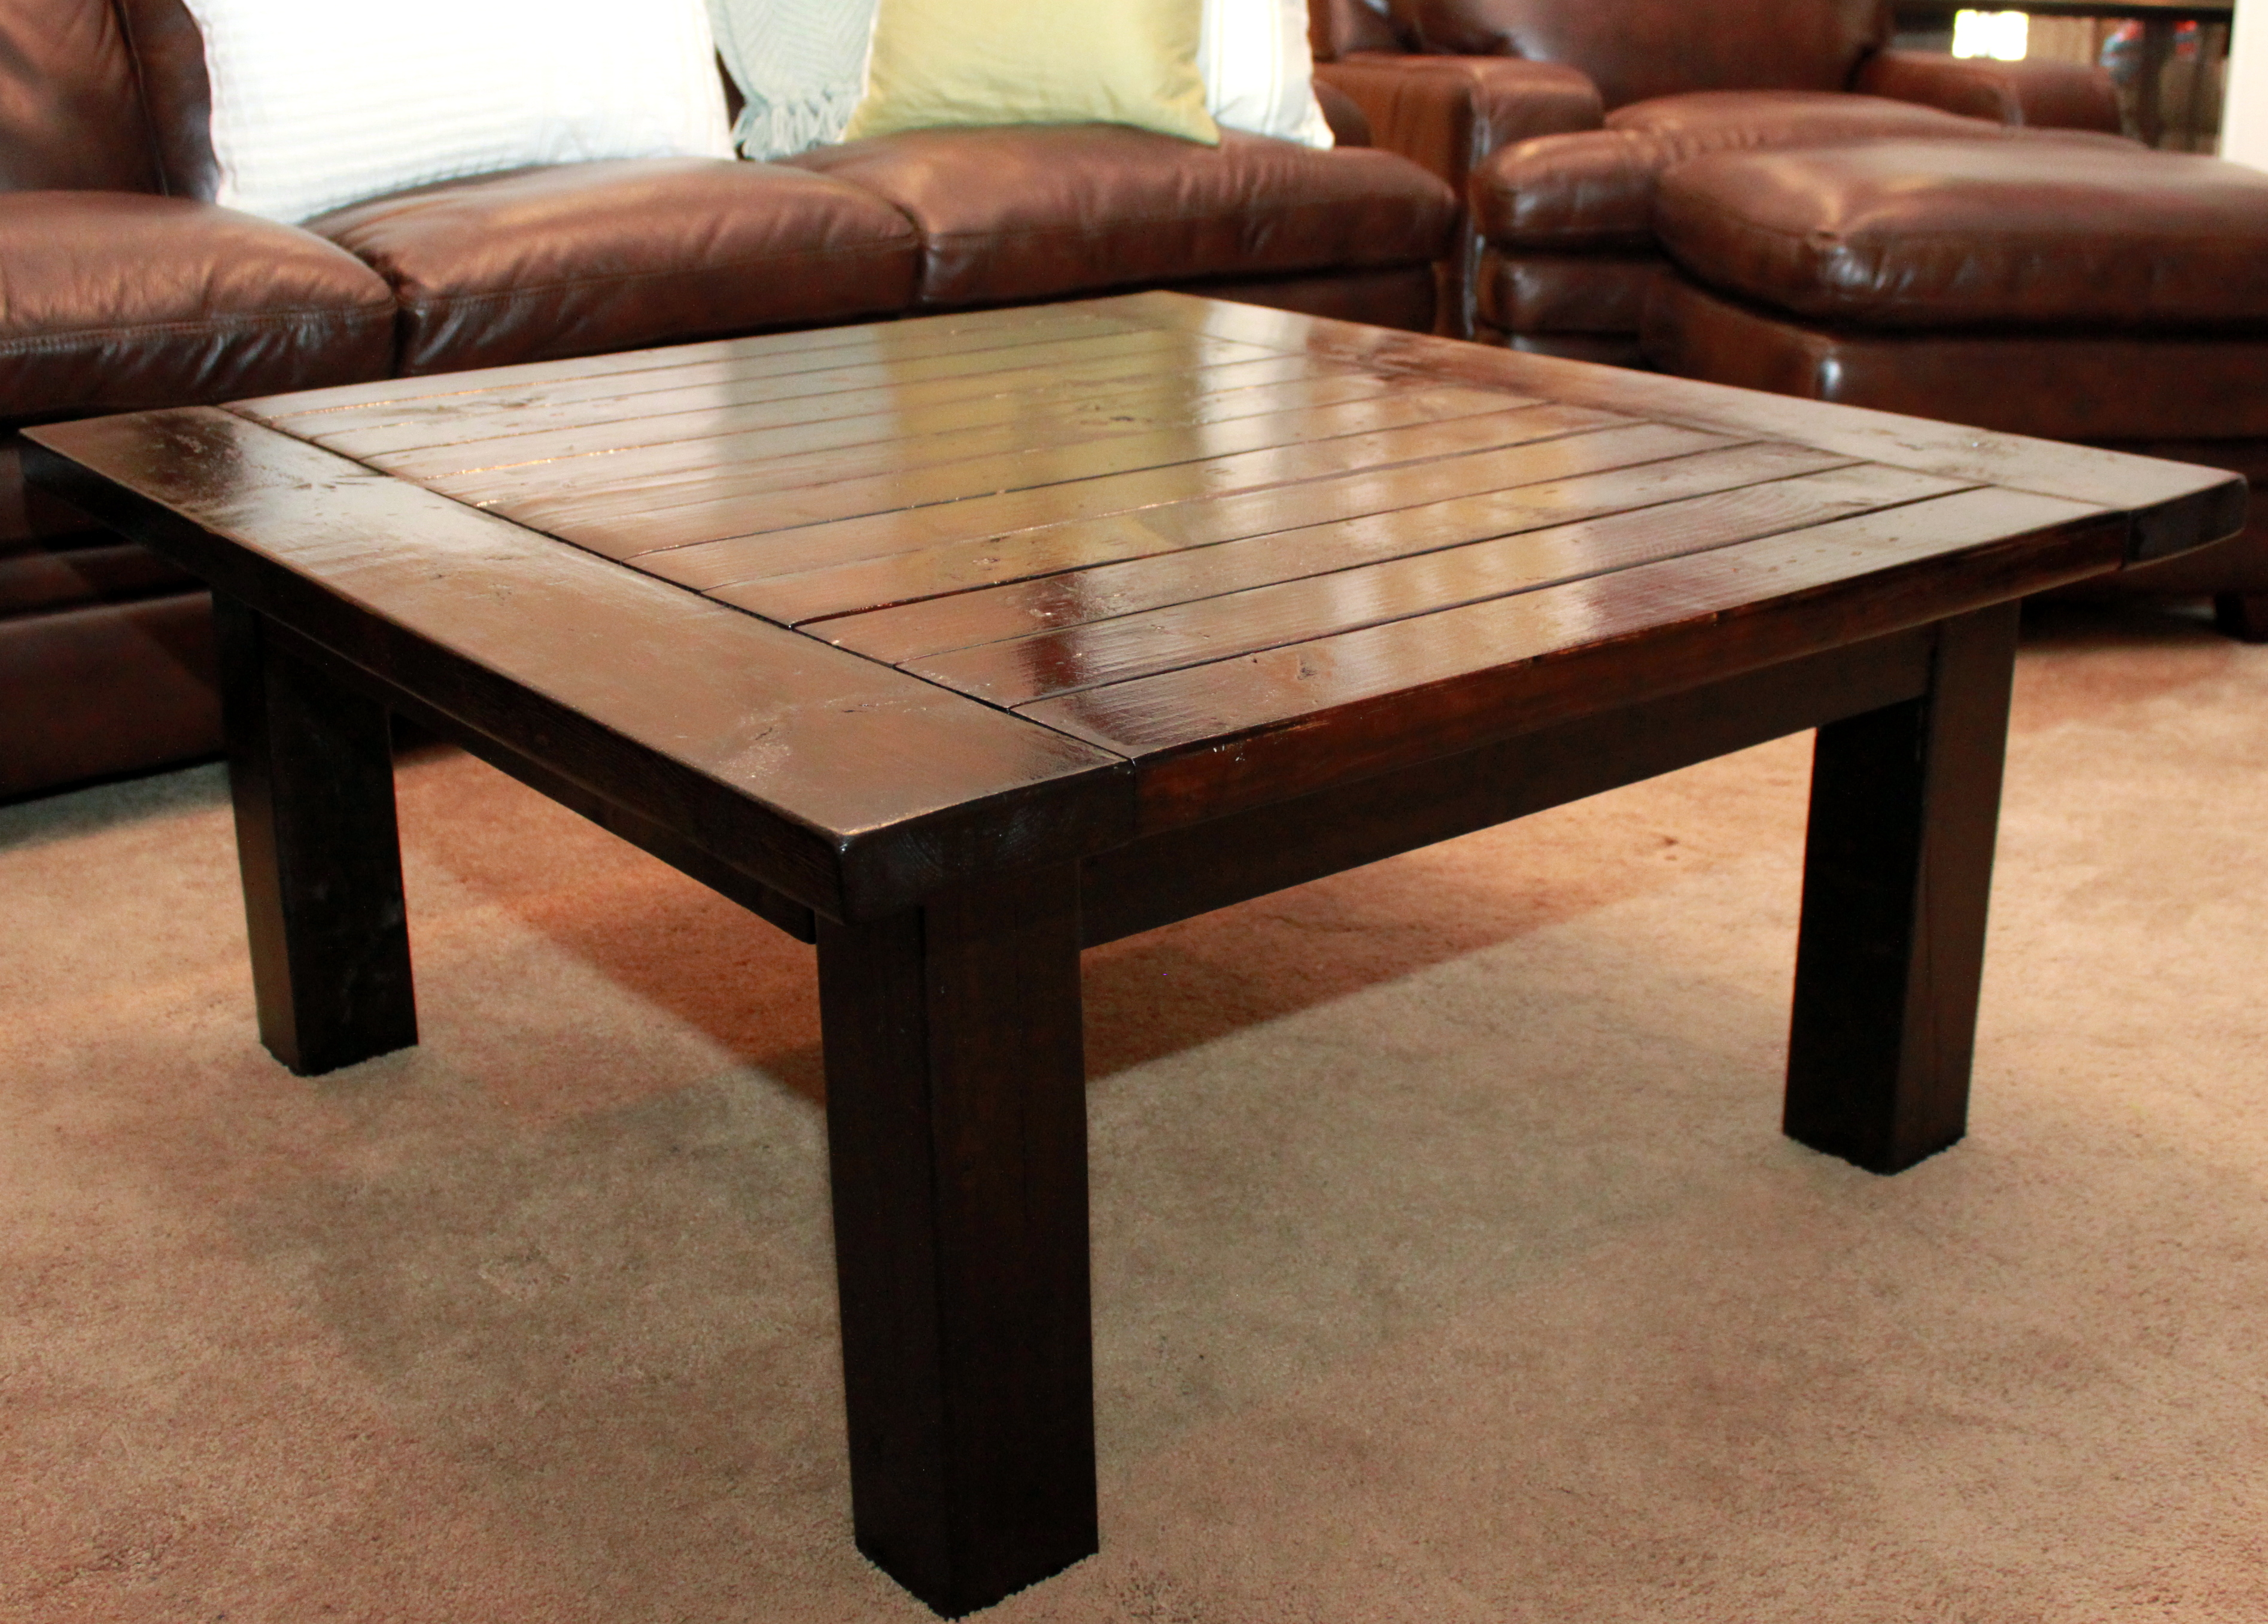 The Tryde Coffee Table Do It Yourself Home Projects From Ana White